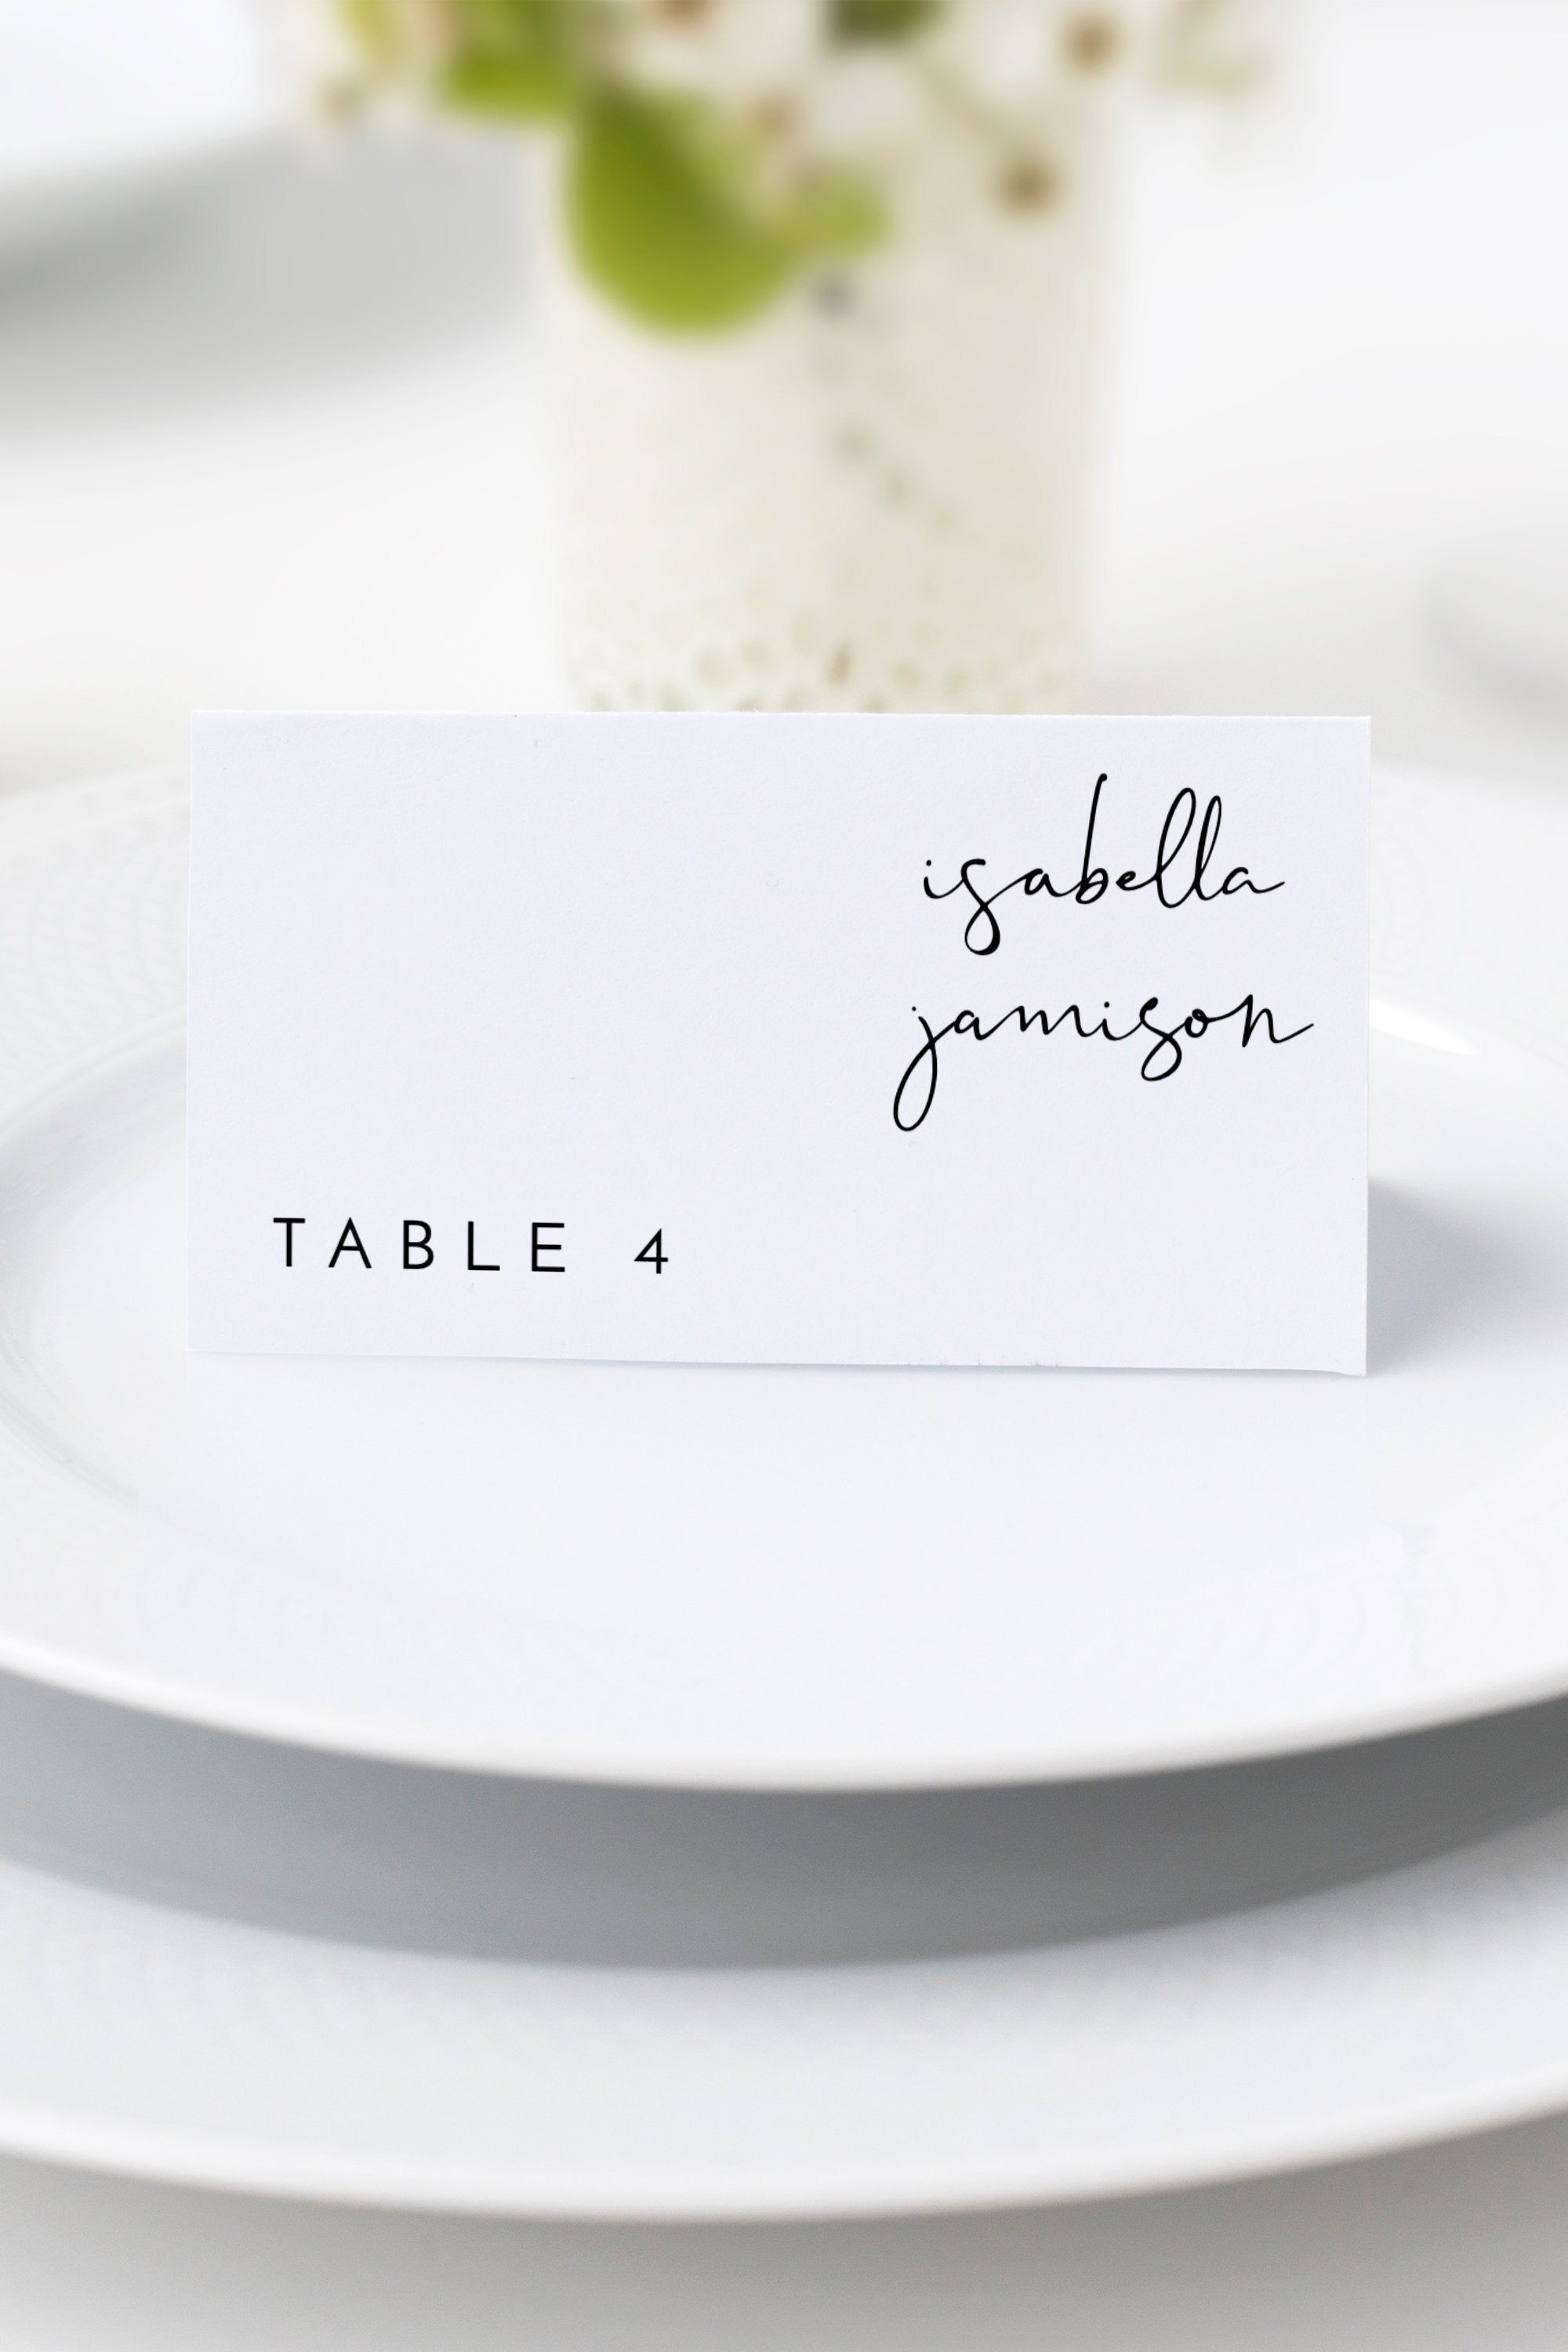 002 Fascinating Wedding Name Card Template Picture  Free Download Design Sticker FormatFull